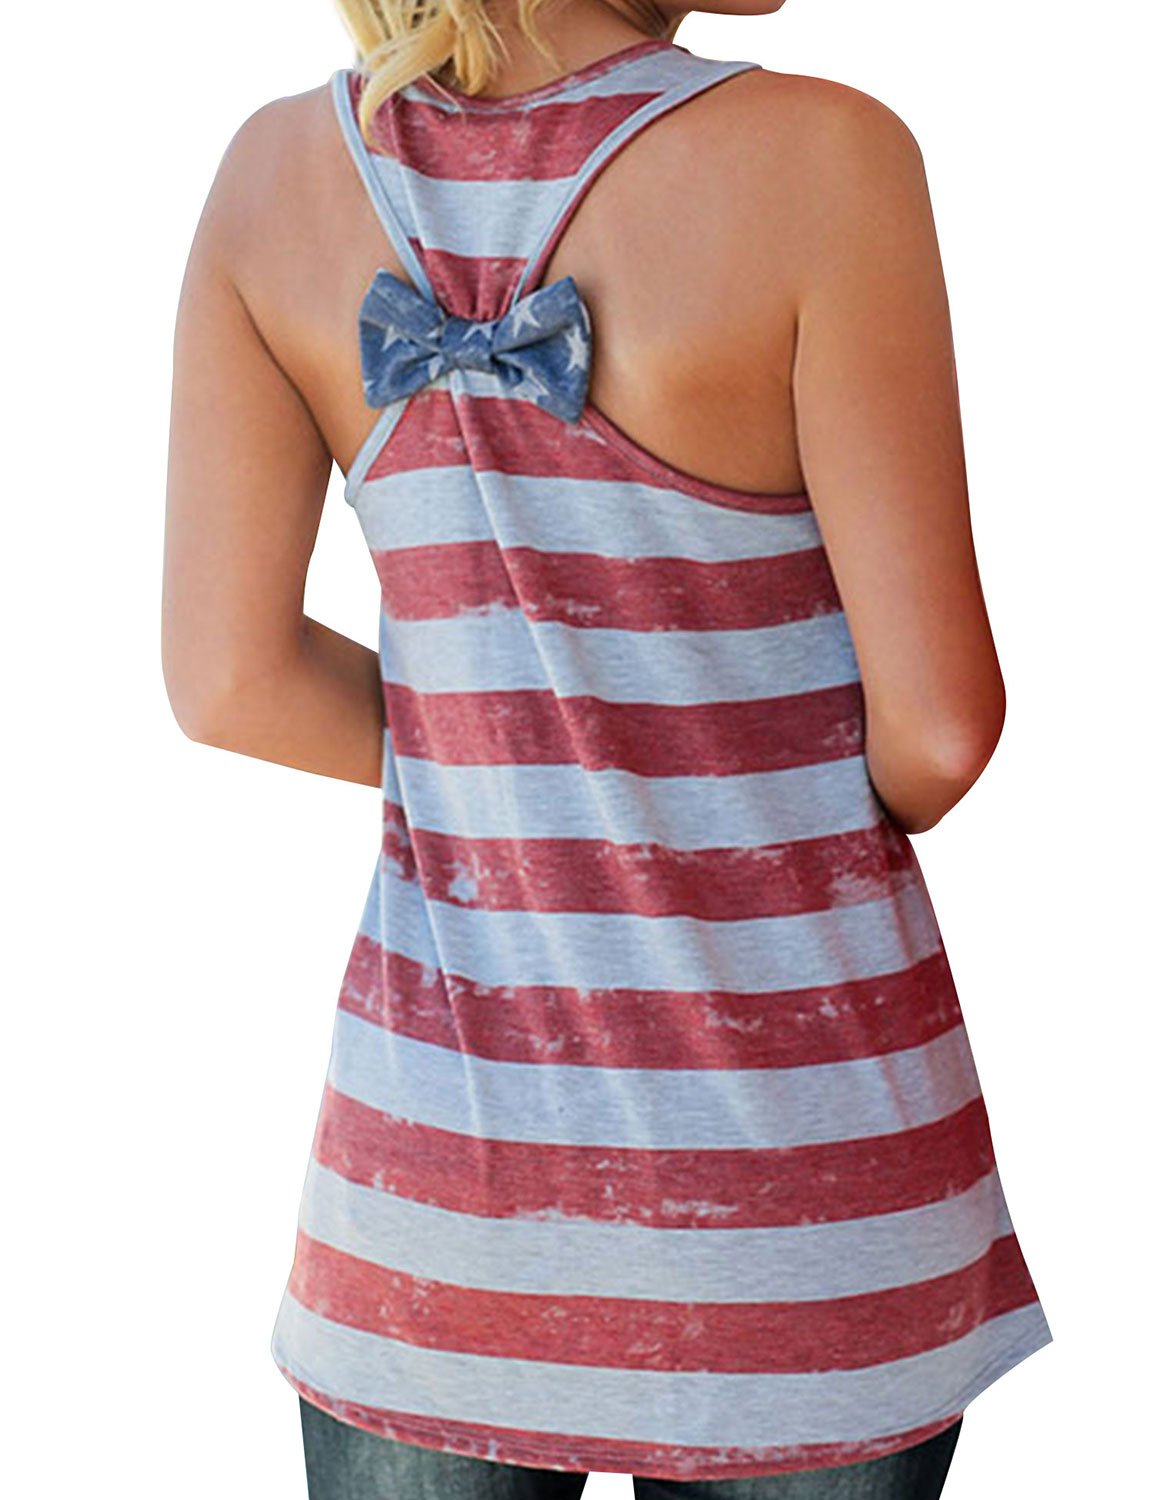 Nlife Women American Flag Tops Round Neck Sleeveless Tank Top Bow Tie Back Top Casual Blouse Top